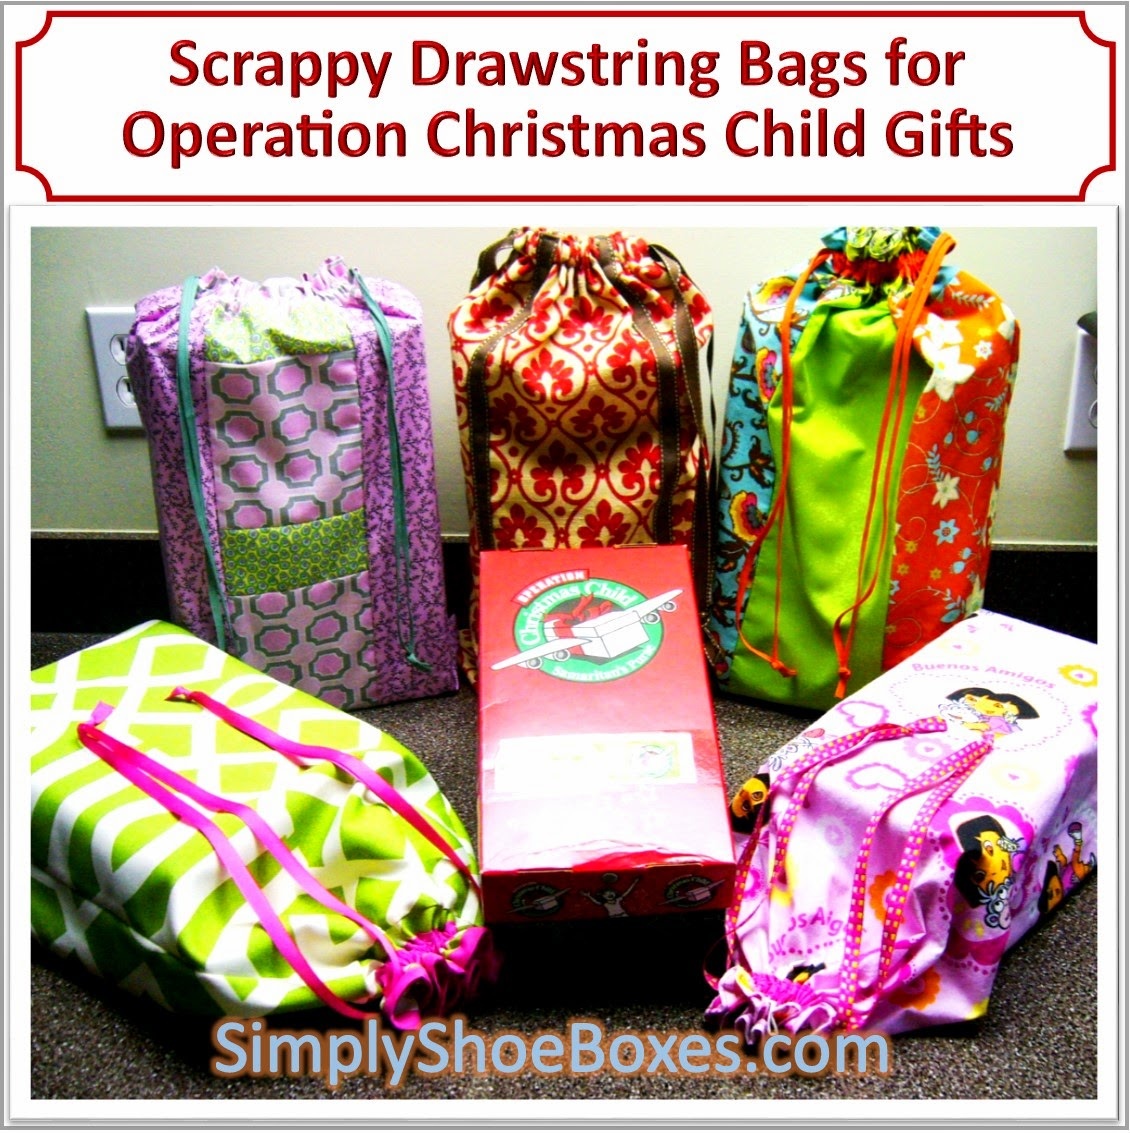 Scrappy Drawstring Tote Bags for OCC Shoe Box Gifts